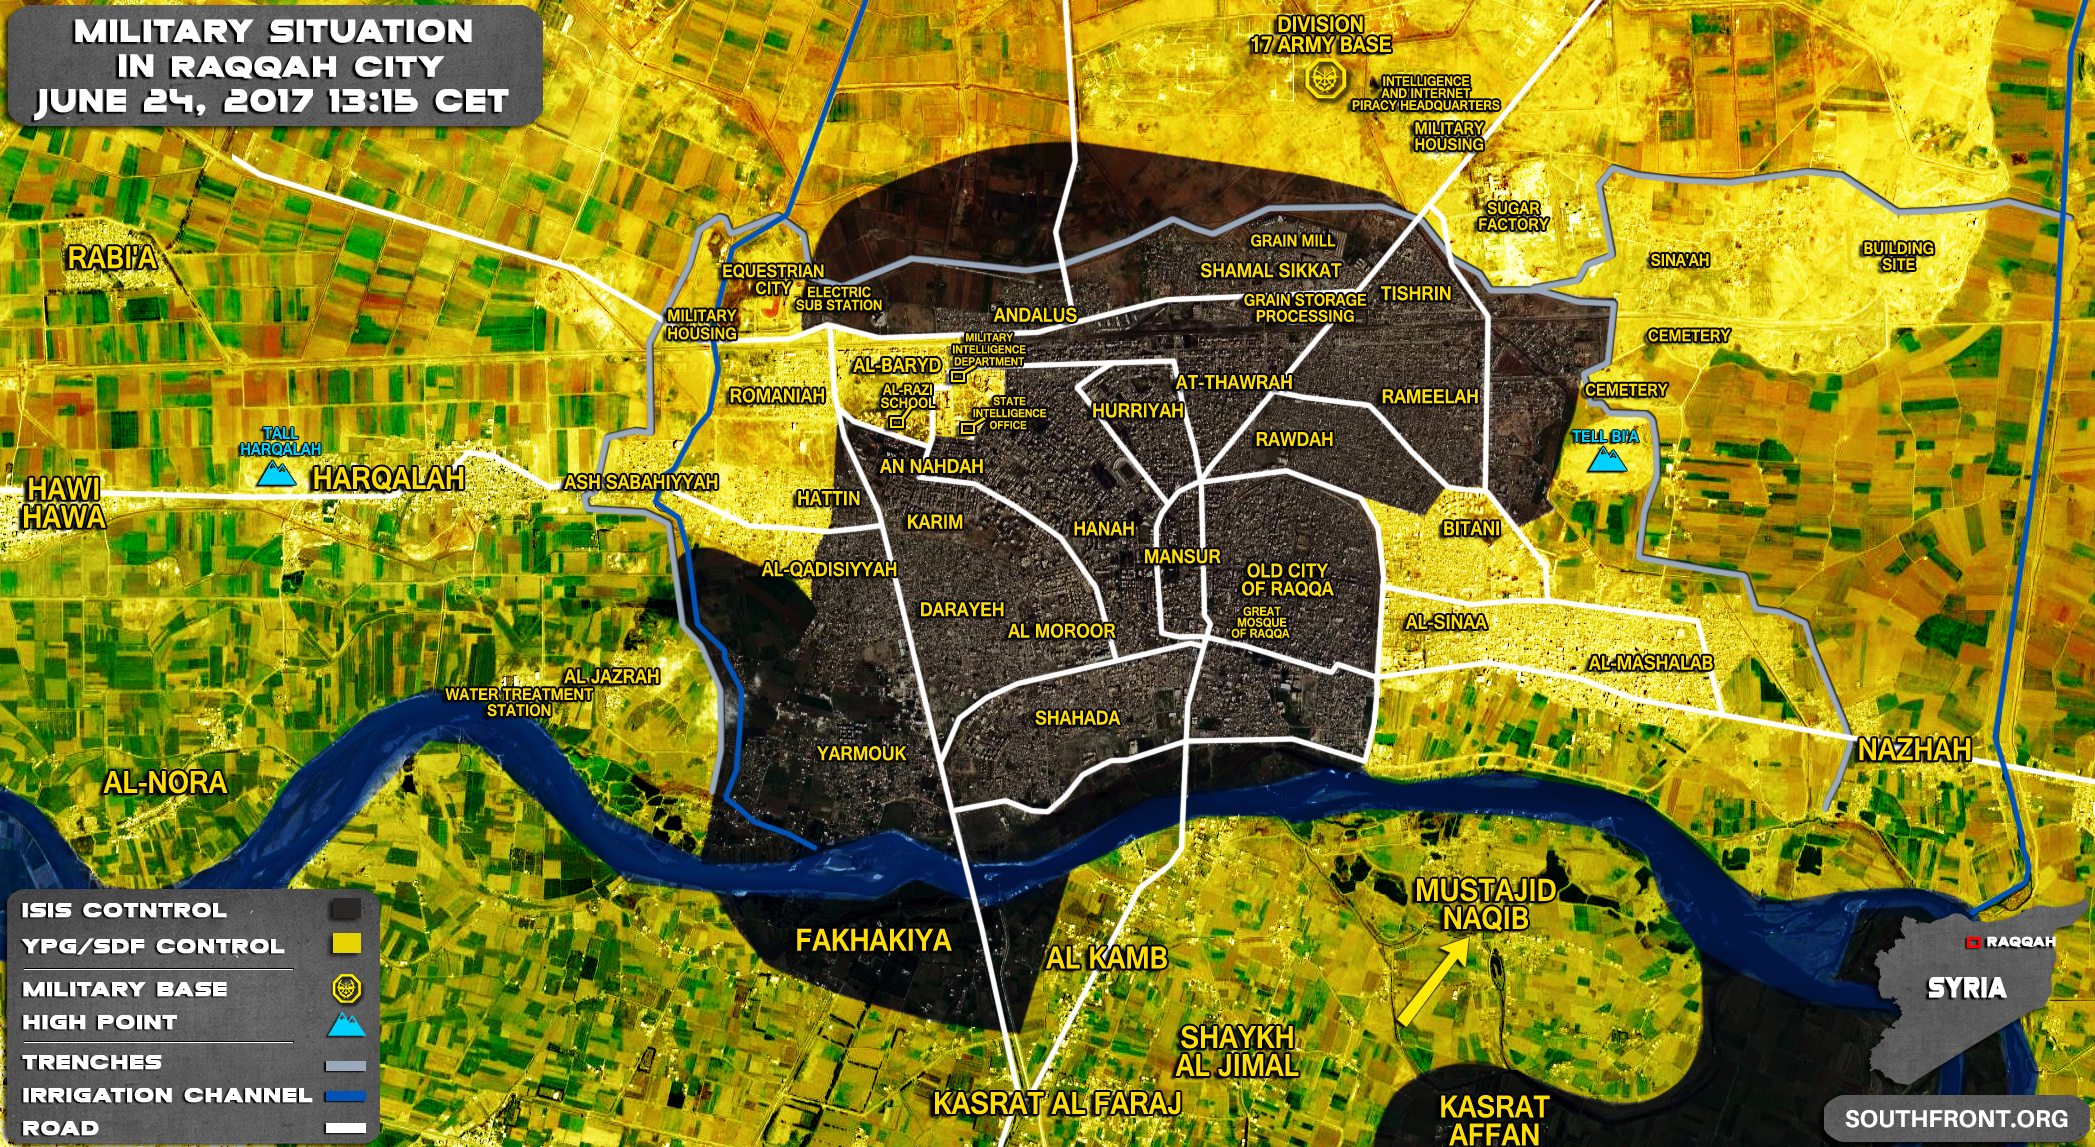 SDF Seizes Mustajid Naqib, Fully Encircles Raqqah City (Map)